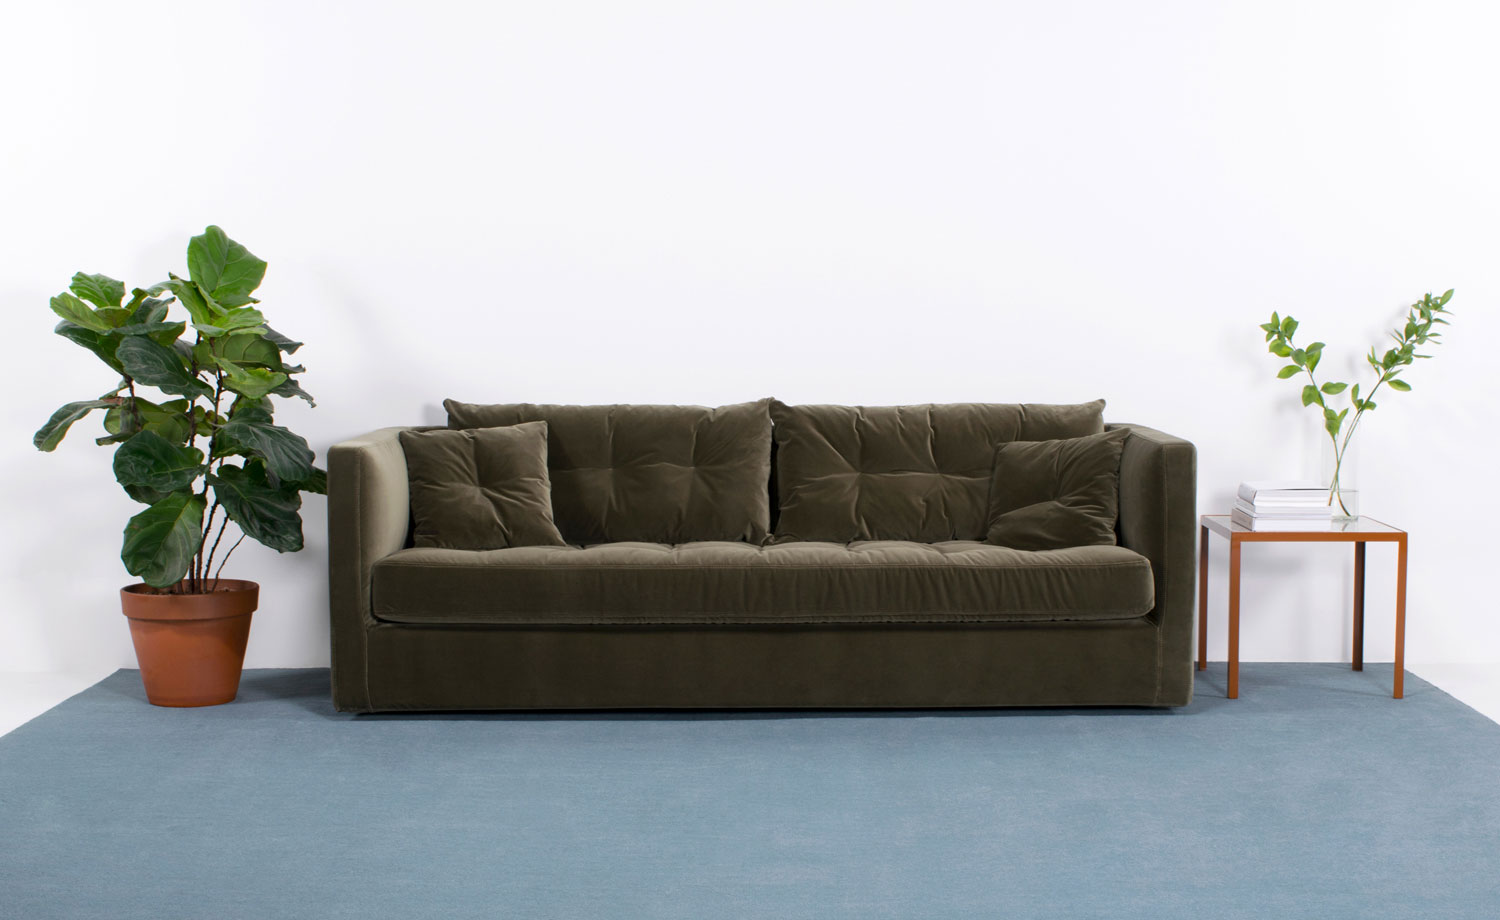 OUR BEST SOFAS